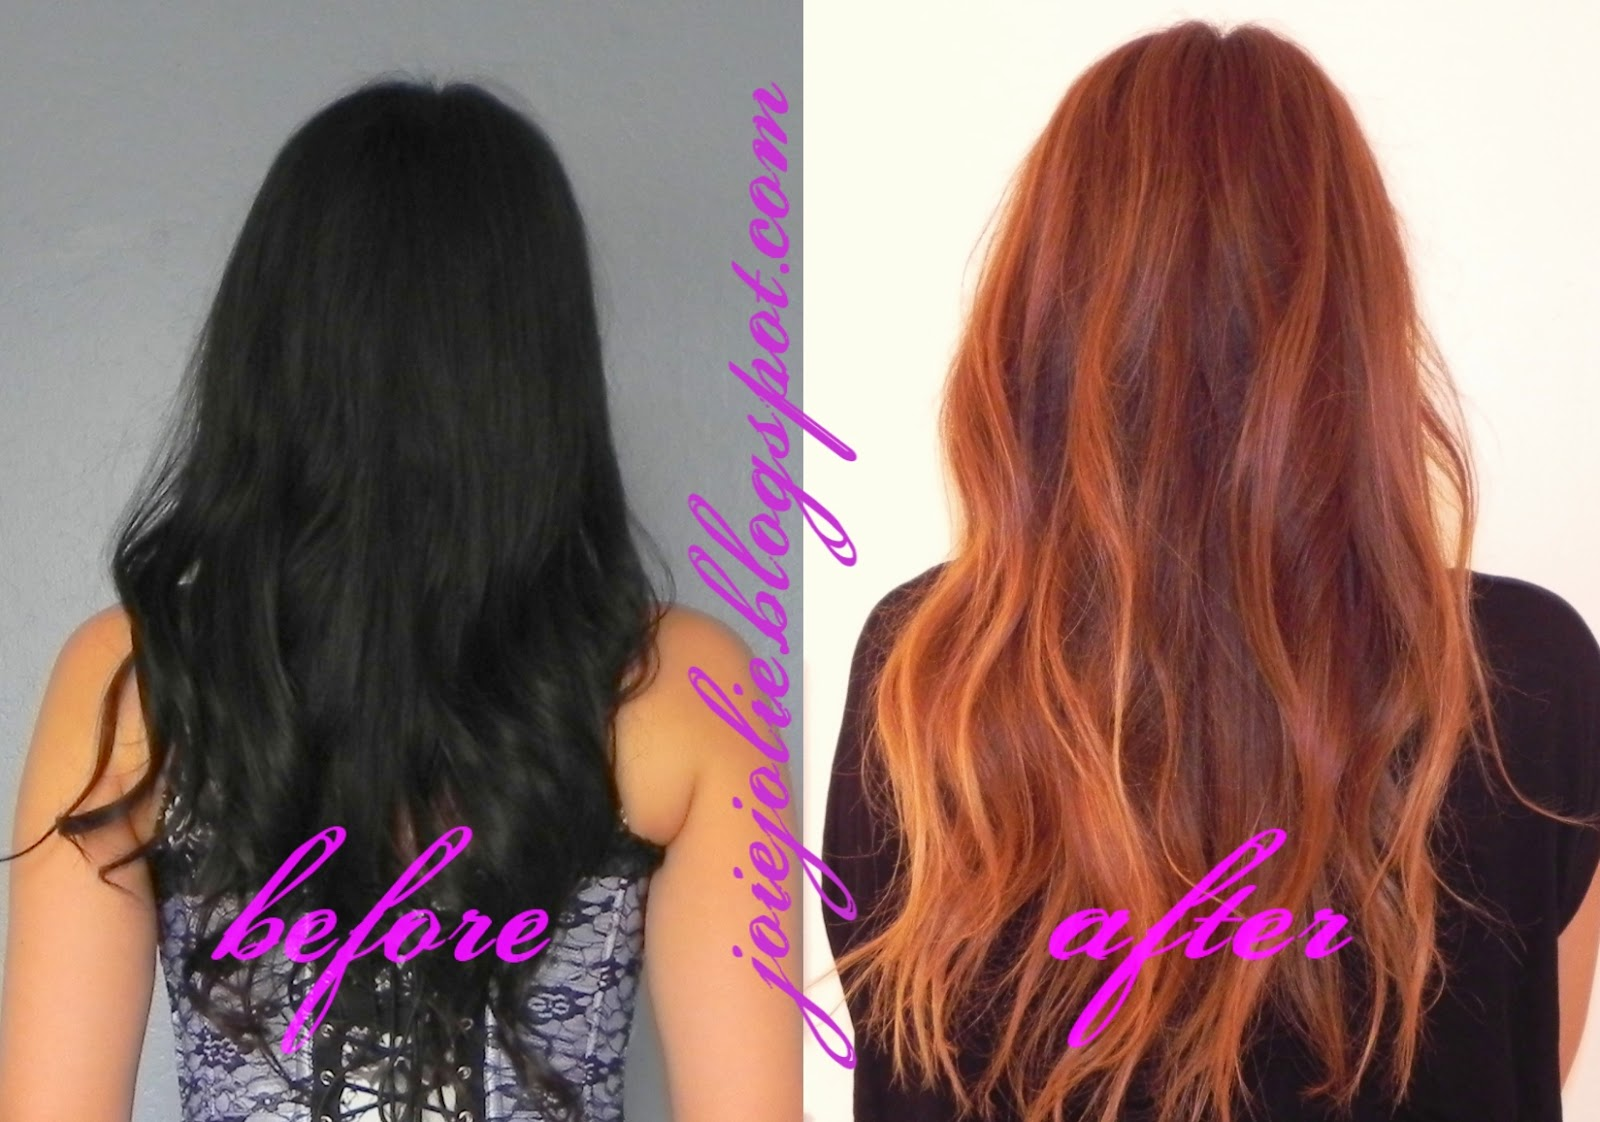 Black and brown balayage hair